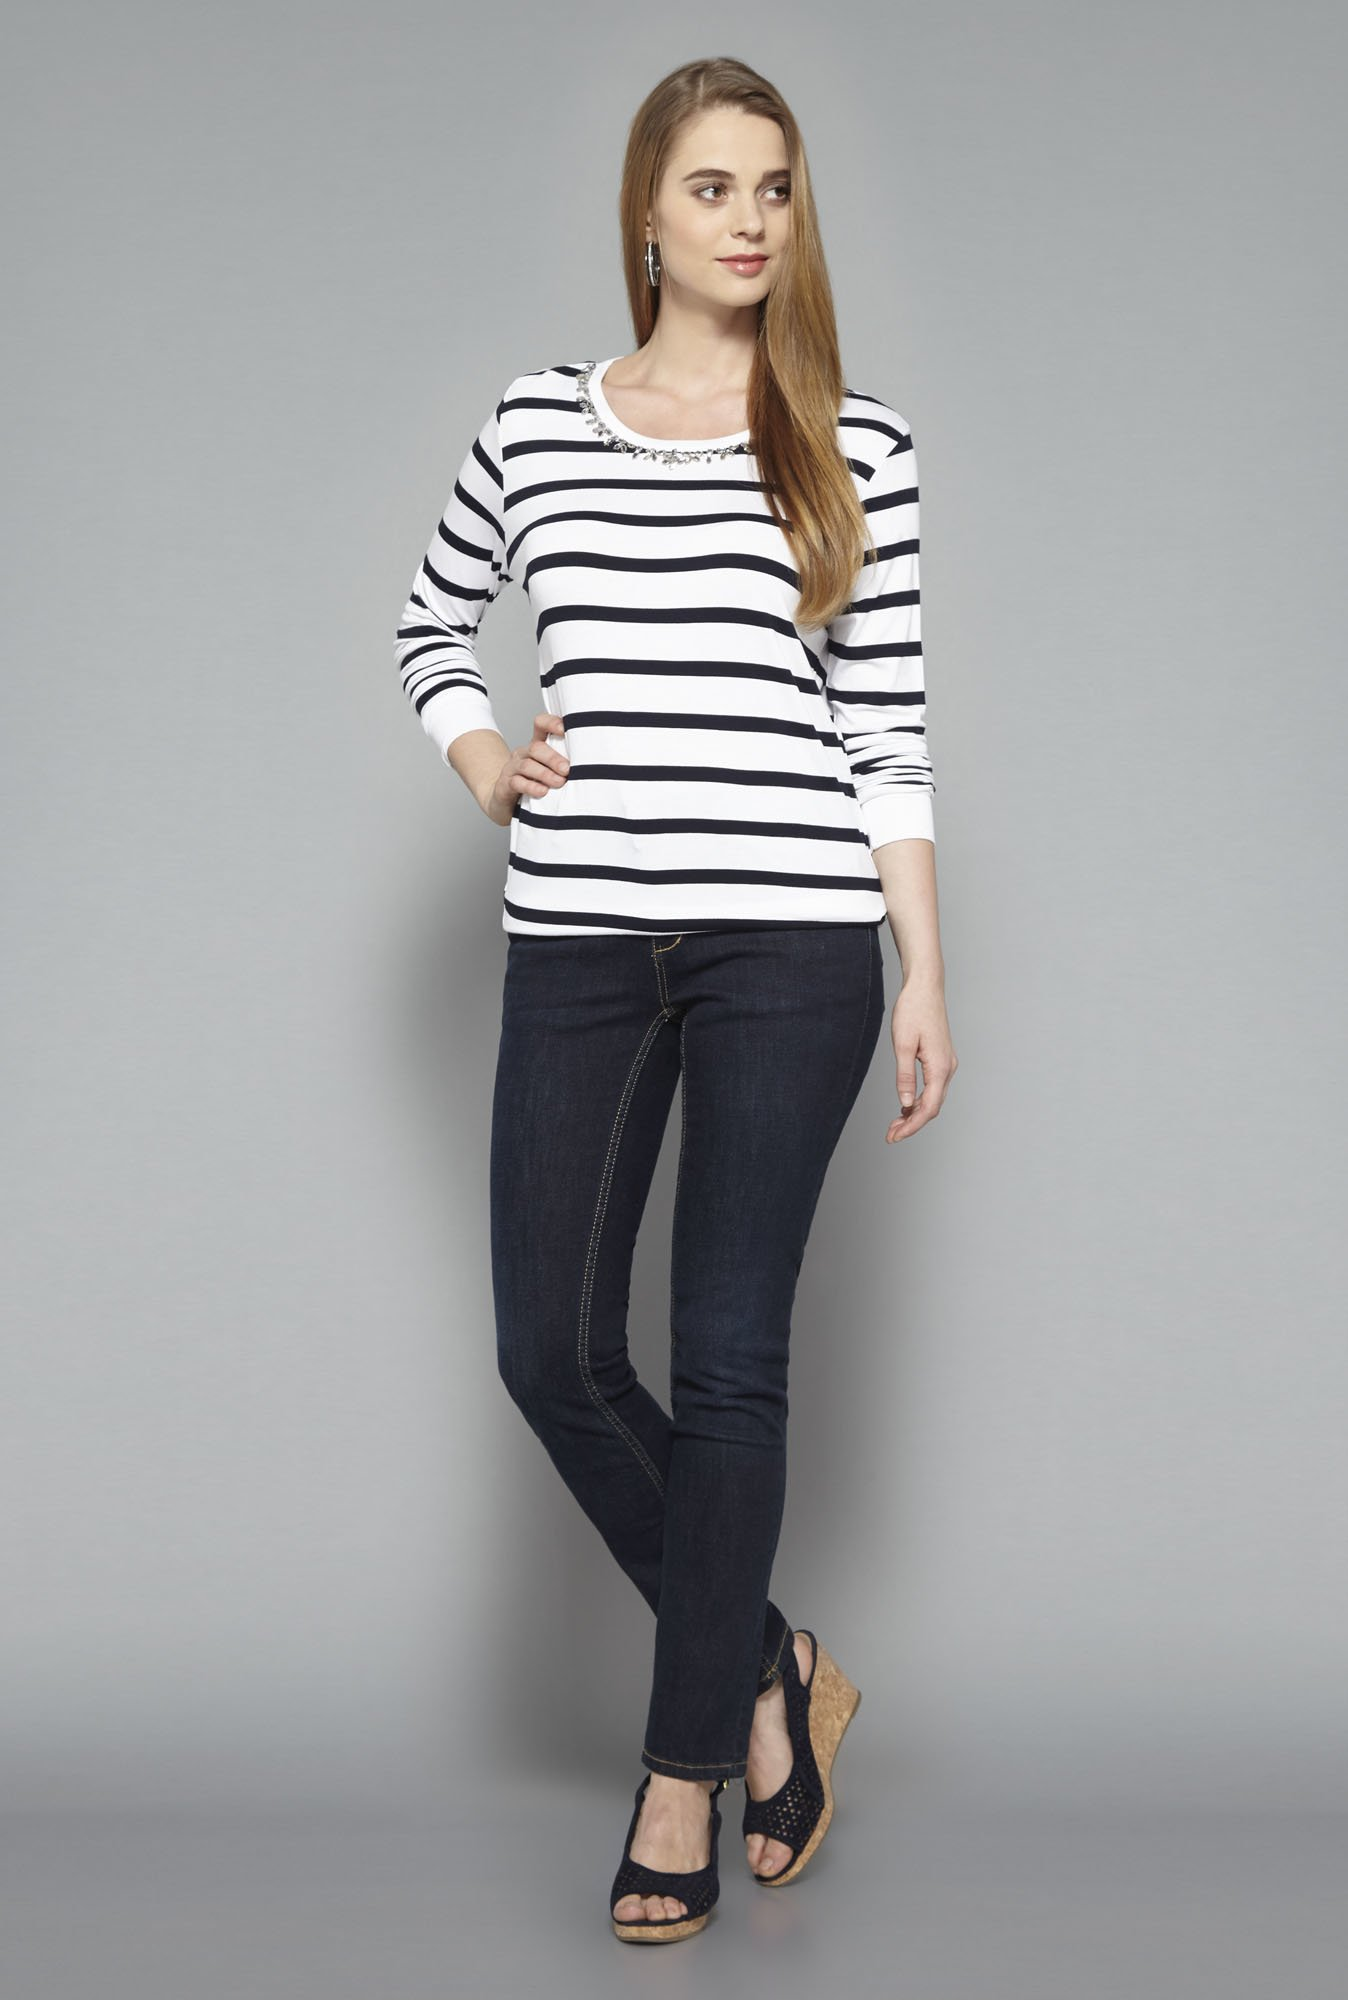 L.O.V Navy Striped T-shirt